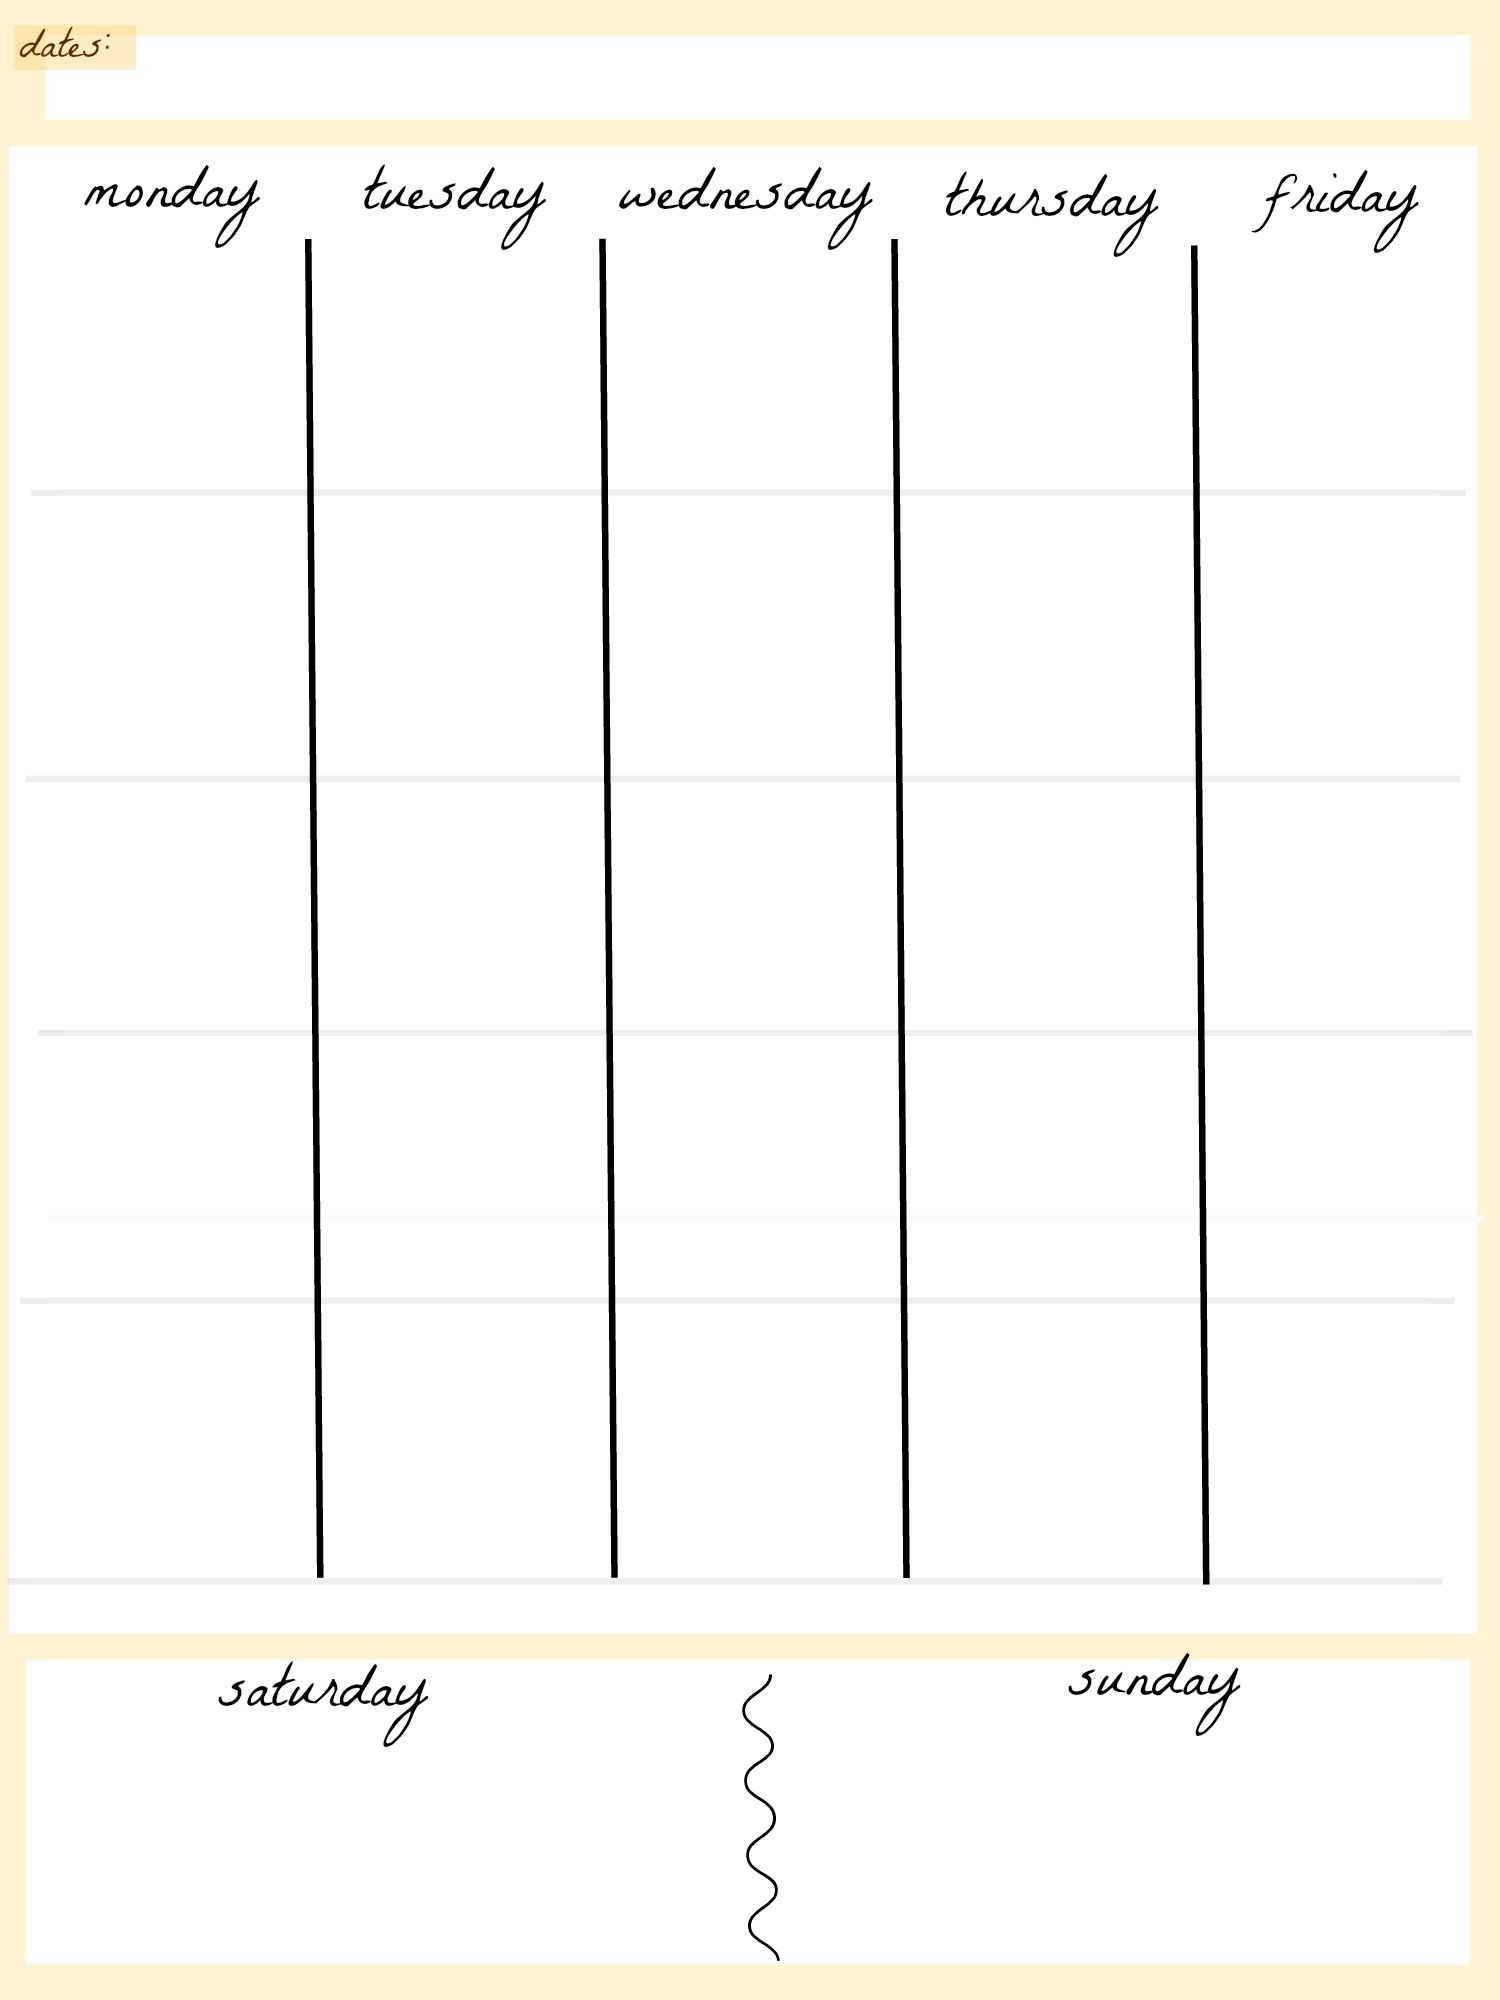 Blank Calendar Template 5 Day Week Weekly Calendar 5 Day Travel Cal1 in Weekly Calendar Template 5 Days